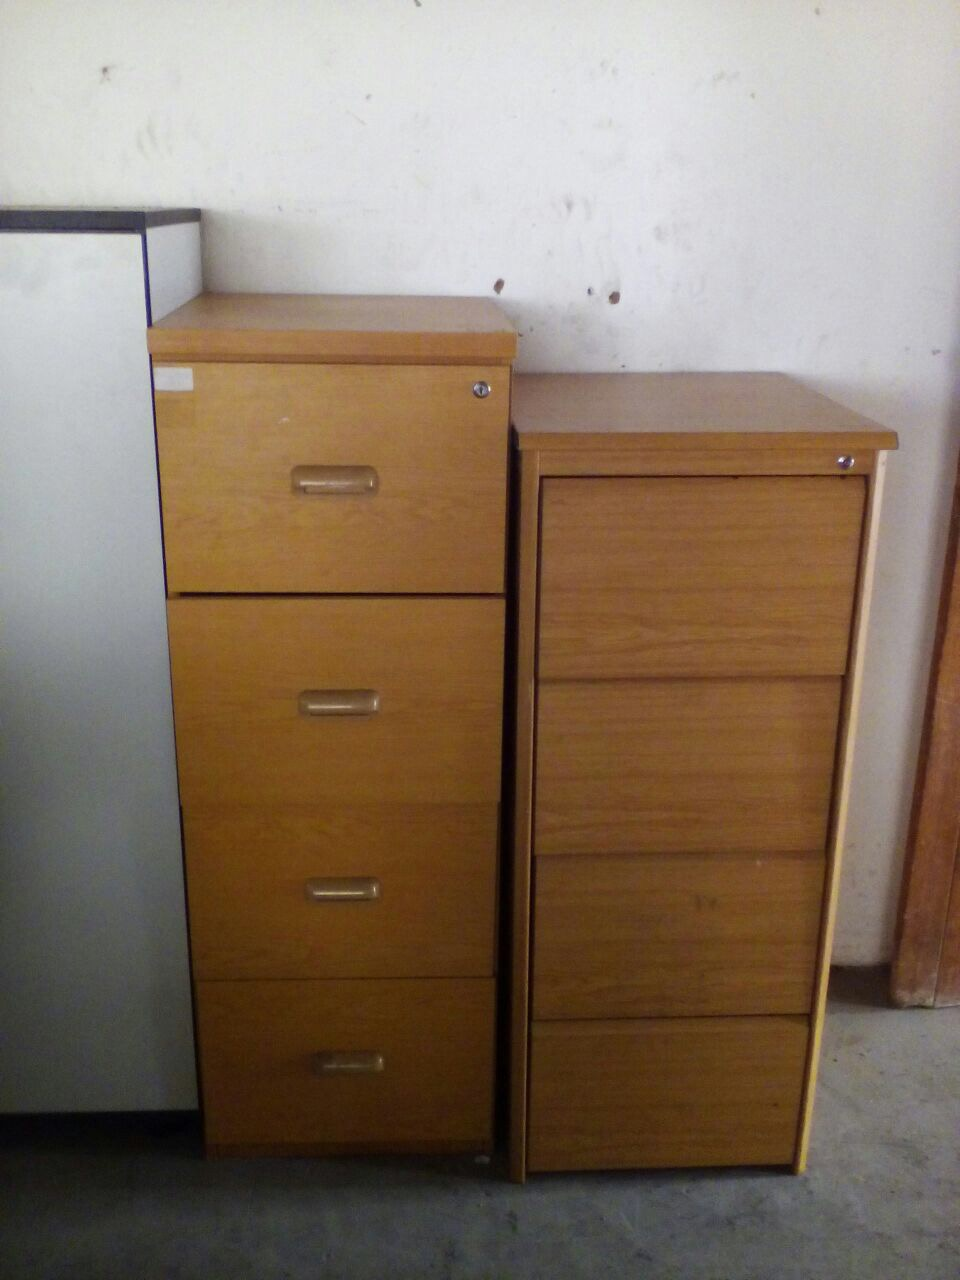 Lockable Office Filing Cabinets With 4 Drawers On